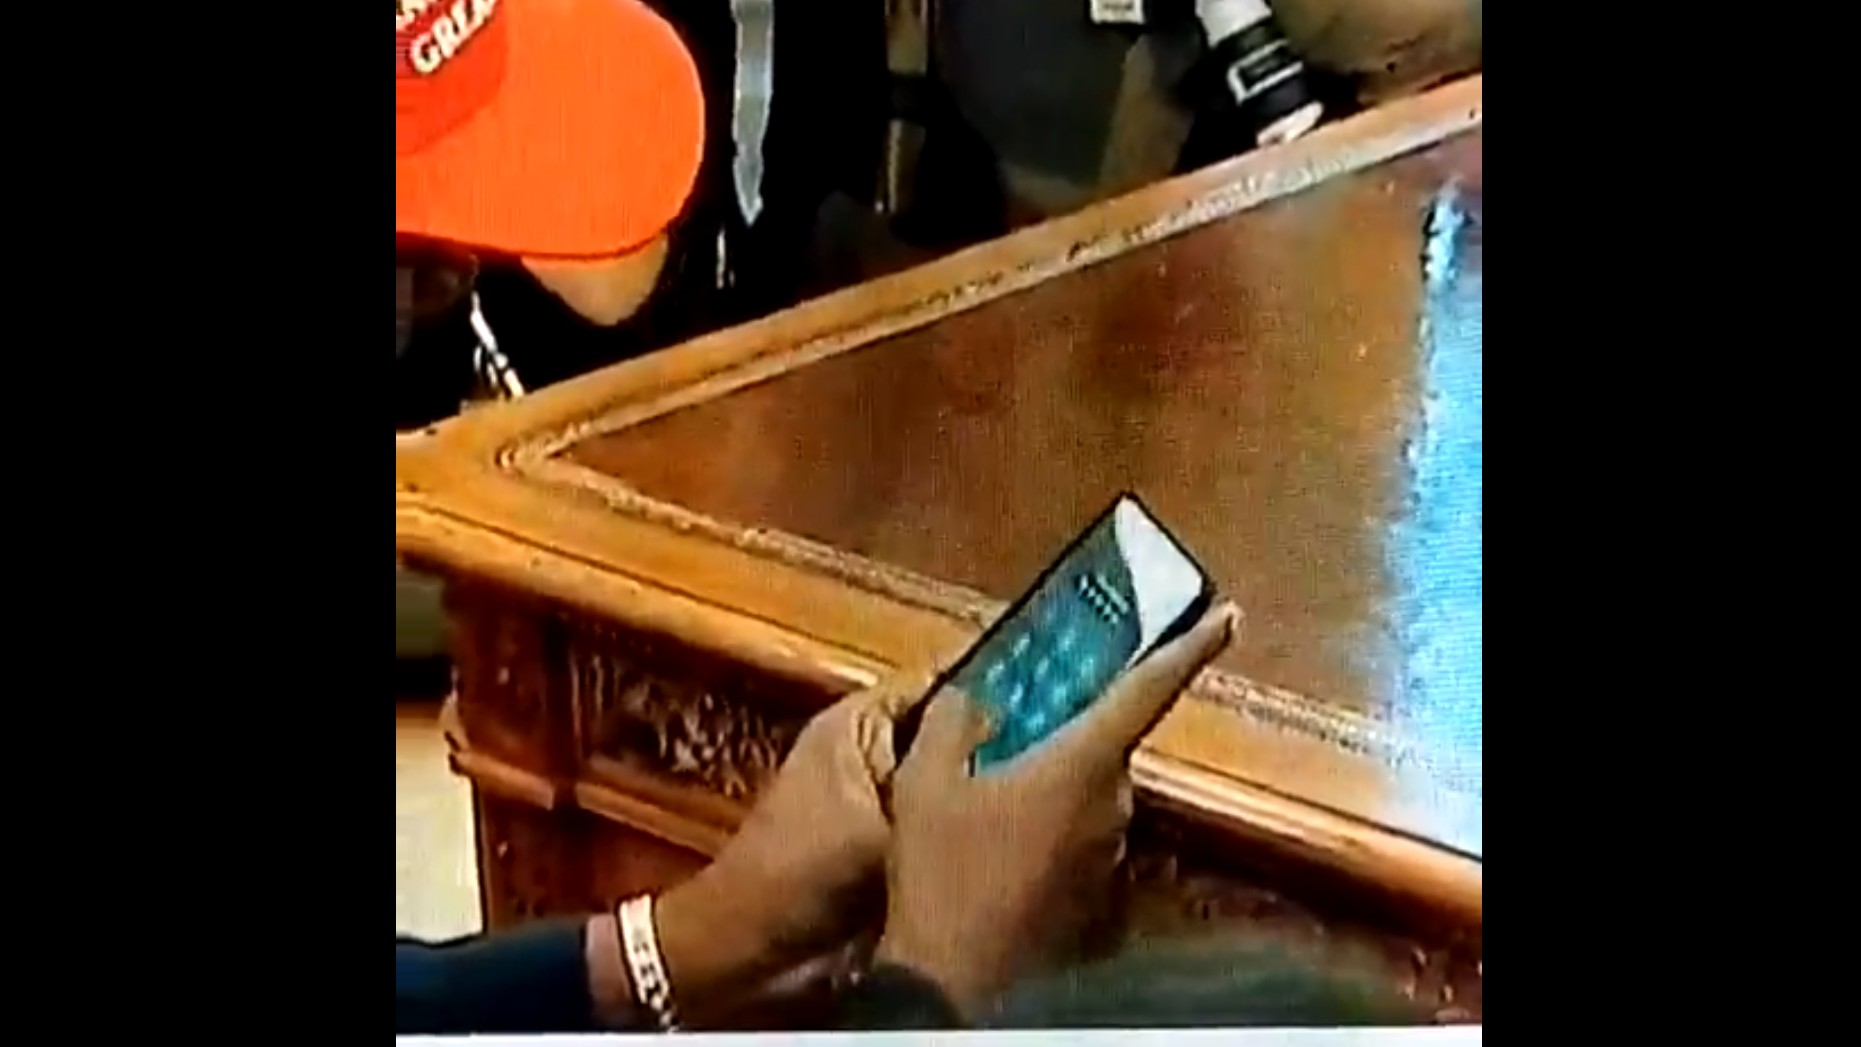 Kanye West Has Literally the Worst iPhone Passcode You Could Ever Have